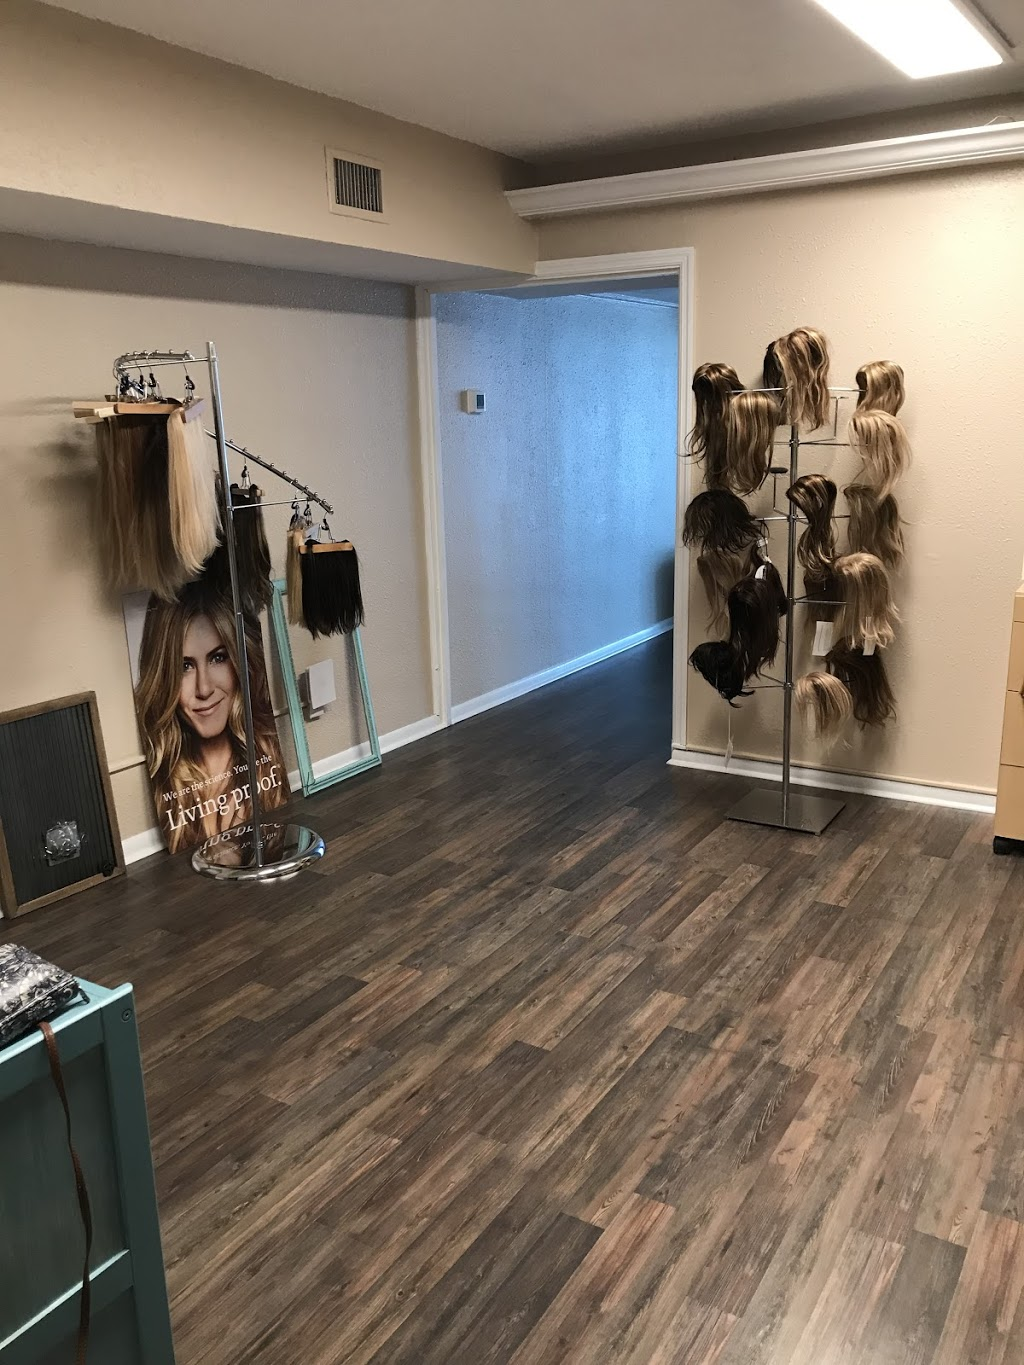 Hair Creations by Tish - hair care  | Photo 2 of 10 | Address: 7312 Central Ave, St. Petersburg, FL 33707, USA | Phone: (727) 252-9056